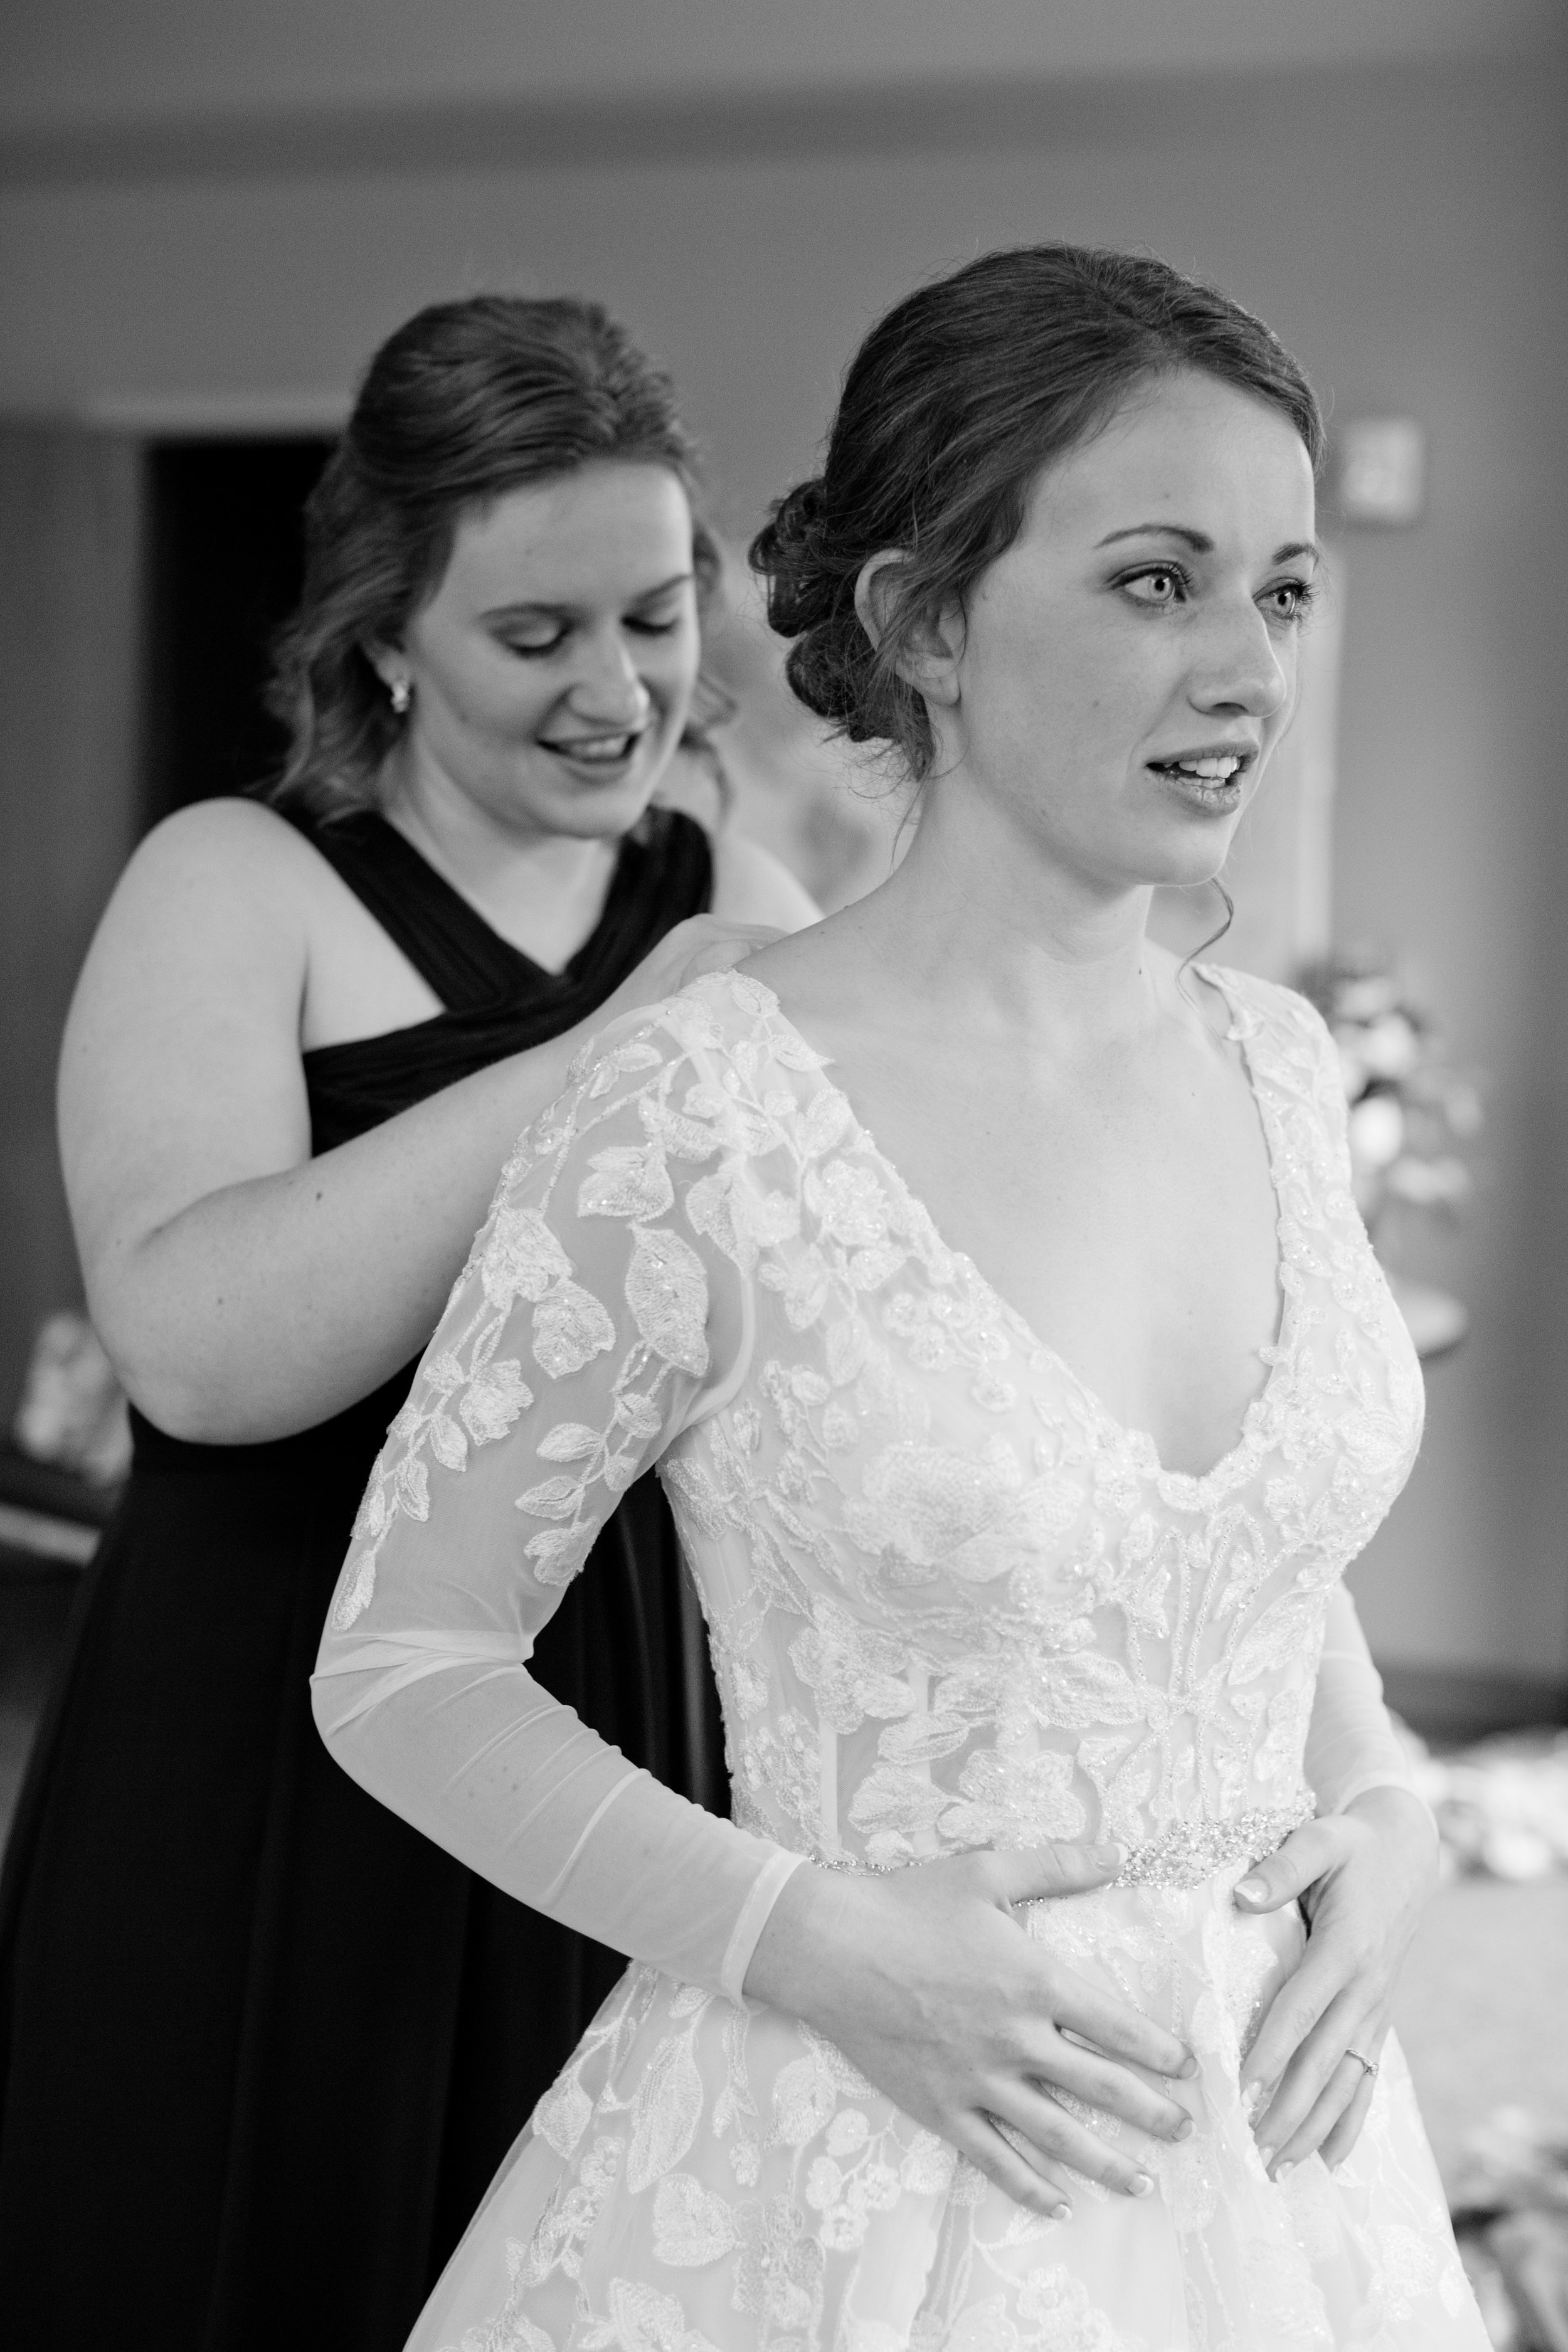 Creston_Wedding_Photographer-56.jpg